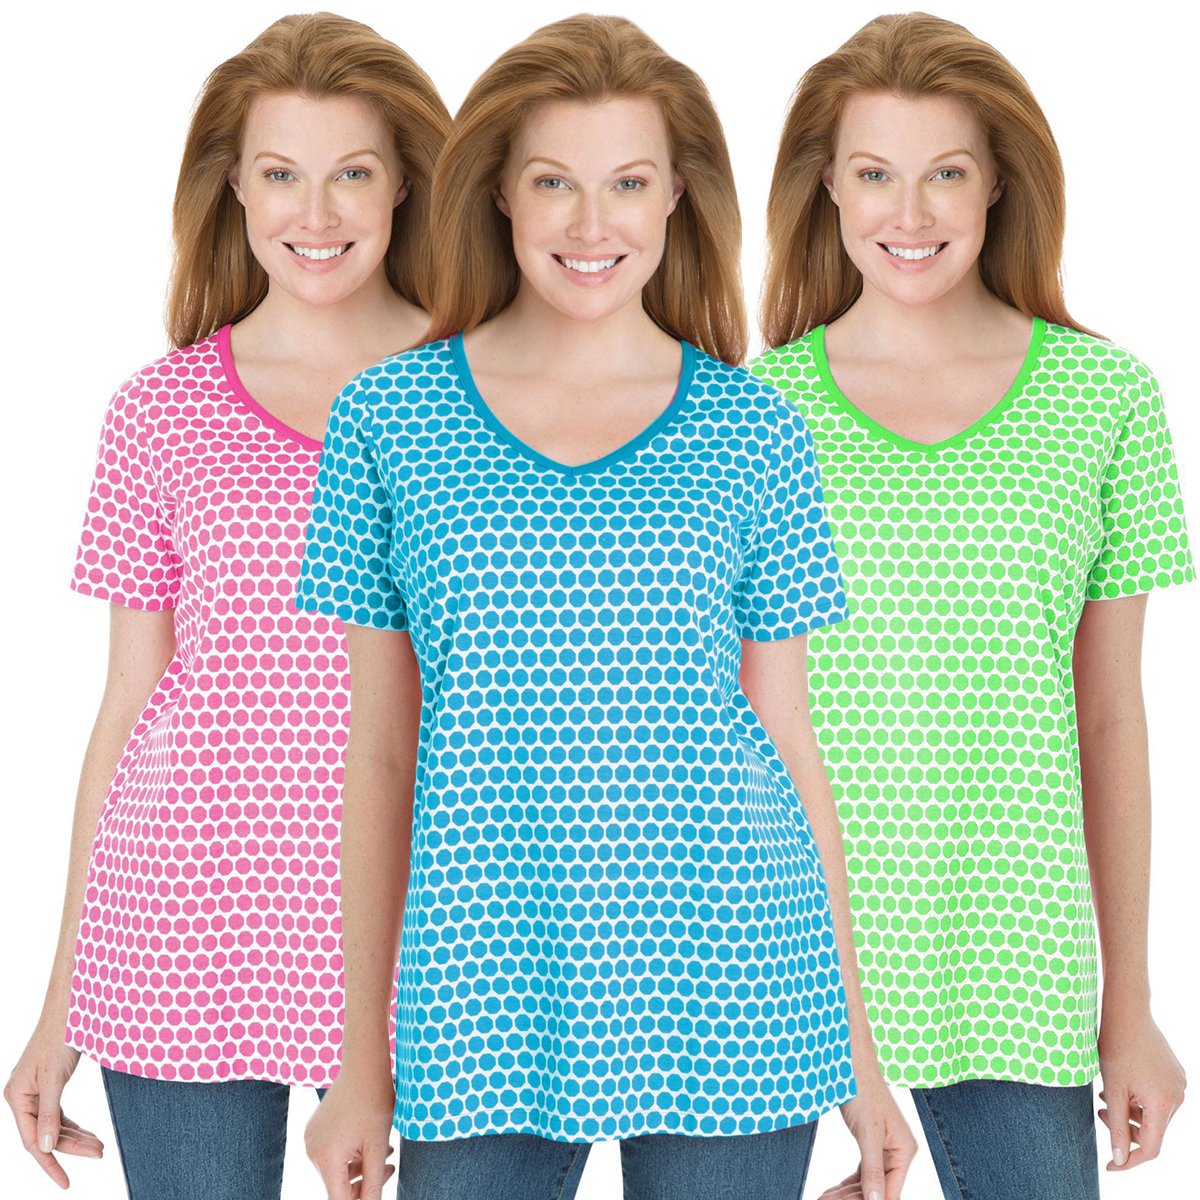 Sale perfect dot v neck plus size tee t shirt 3x 4x for 3x shirts on sale